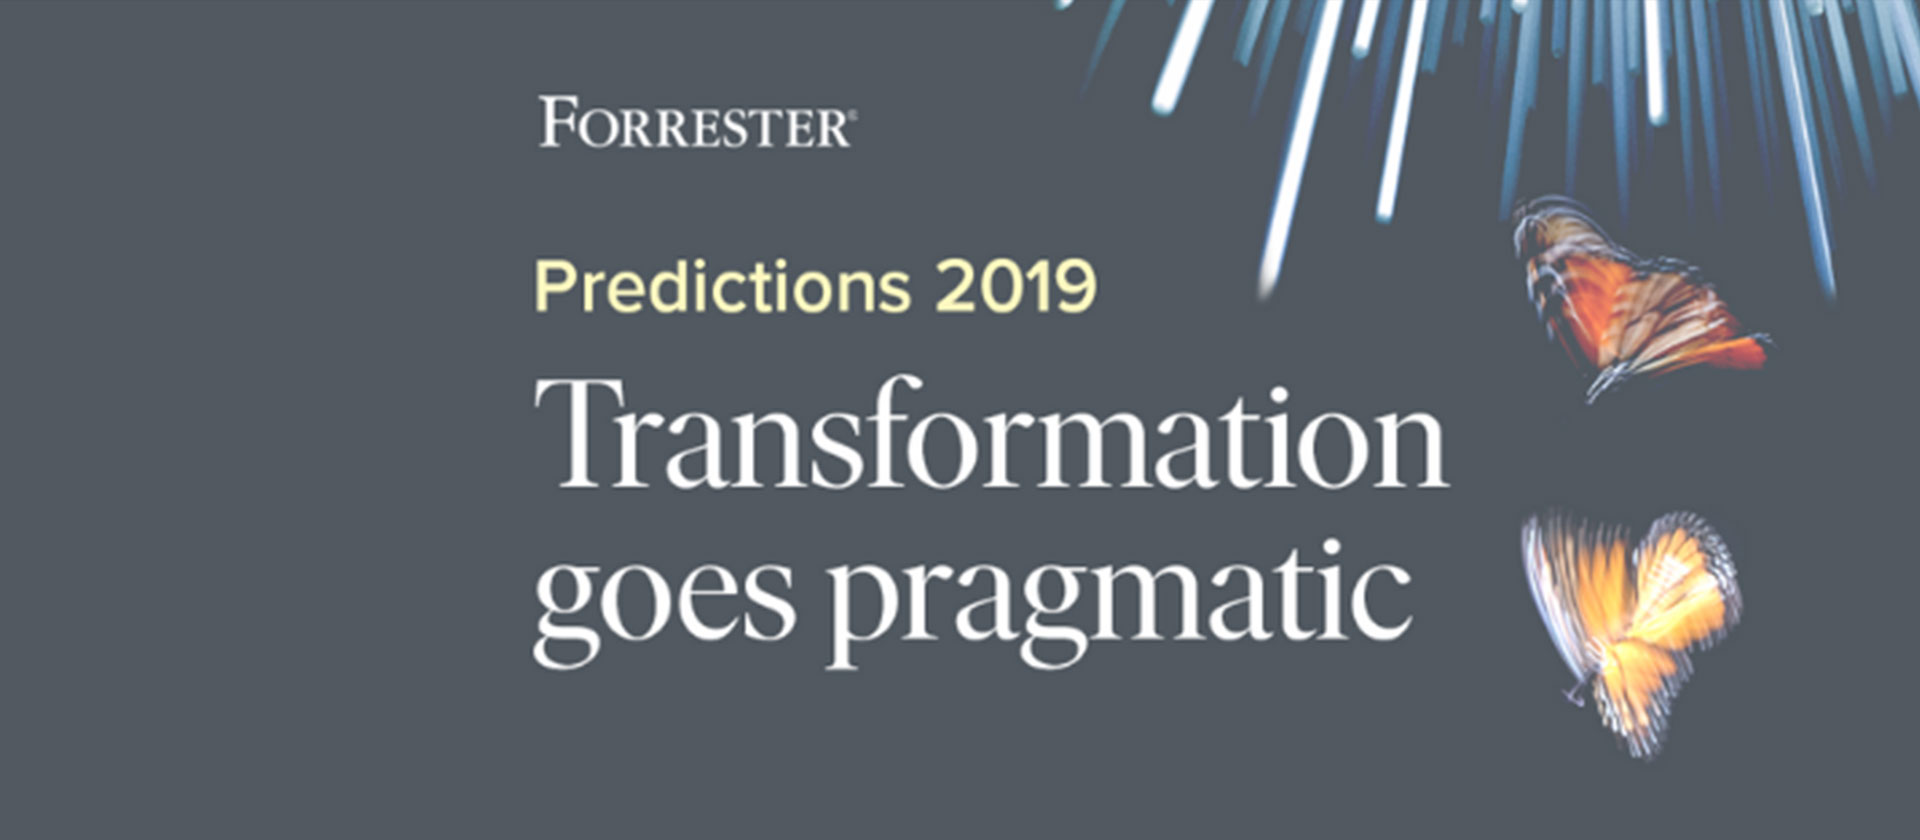 Forrester predictions 2019 annoucement